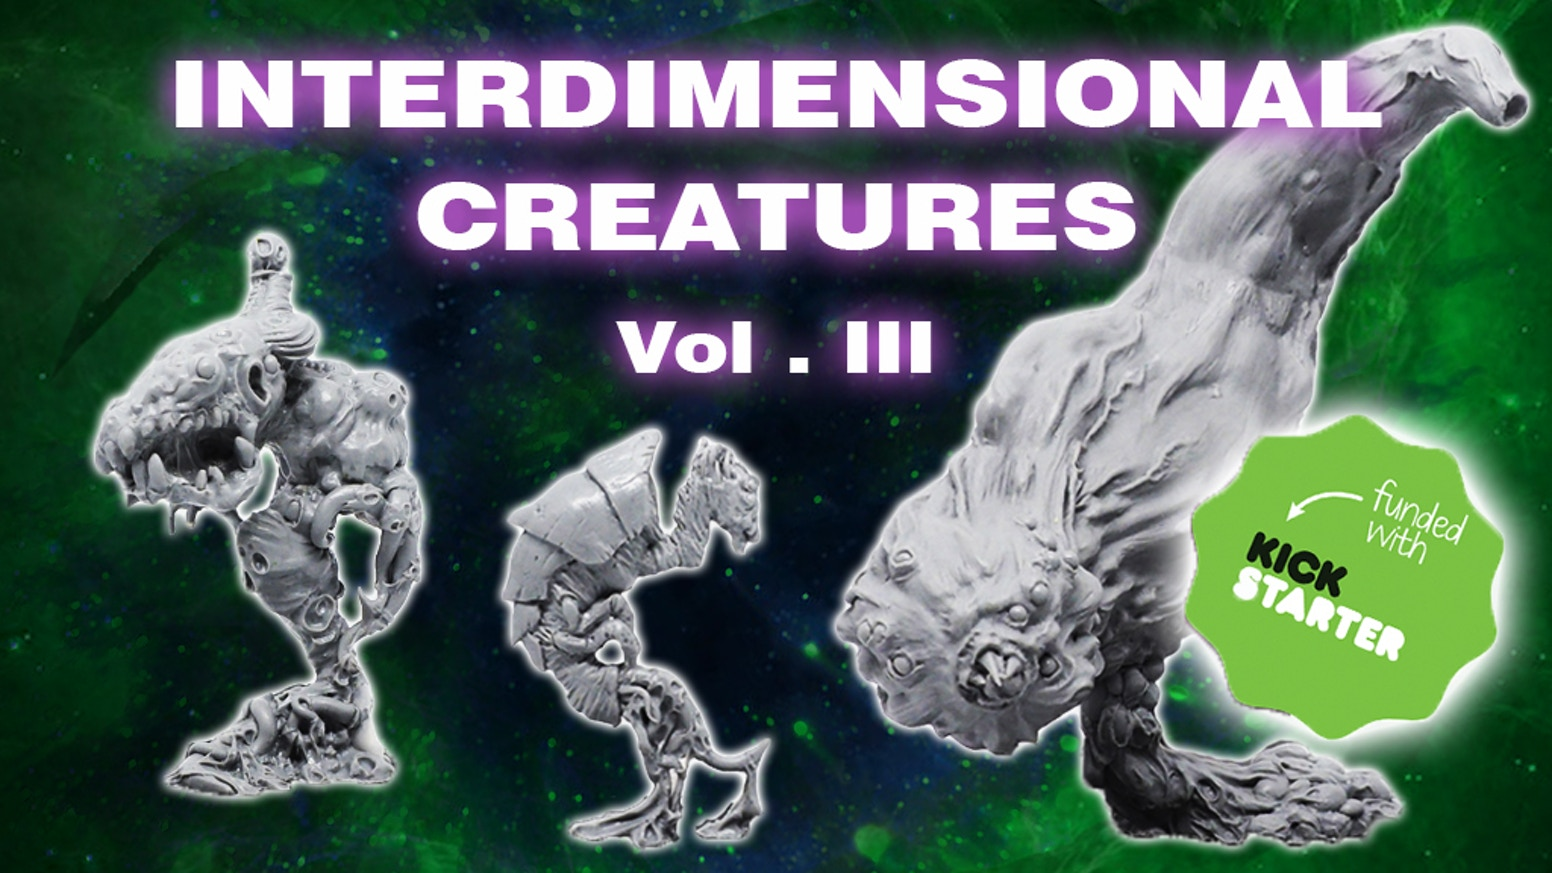 New wave resin miniatures collection based on H.P. Lovecraft's works, designed for RPG gamers, Painters, Collectors and Monster lovers.